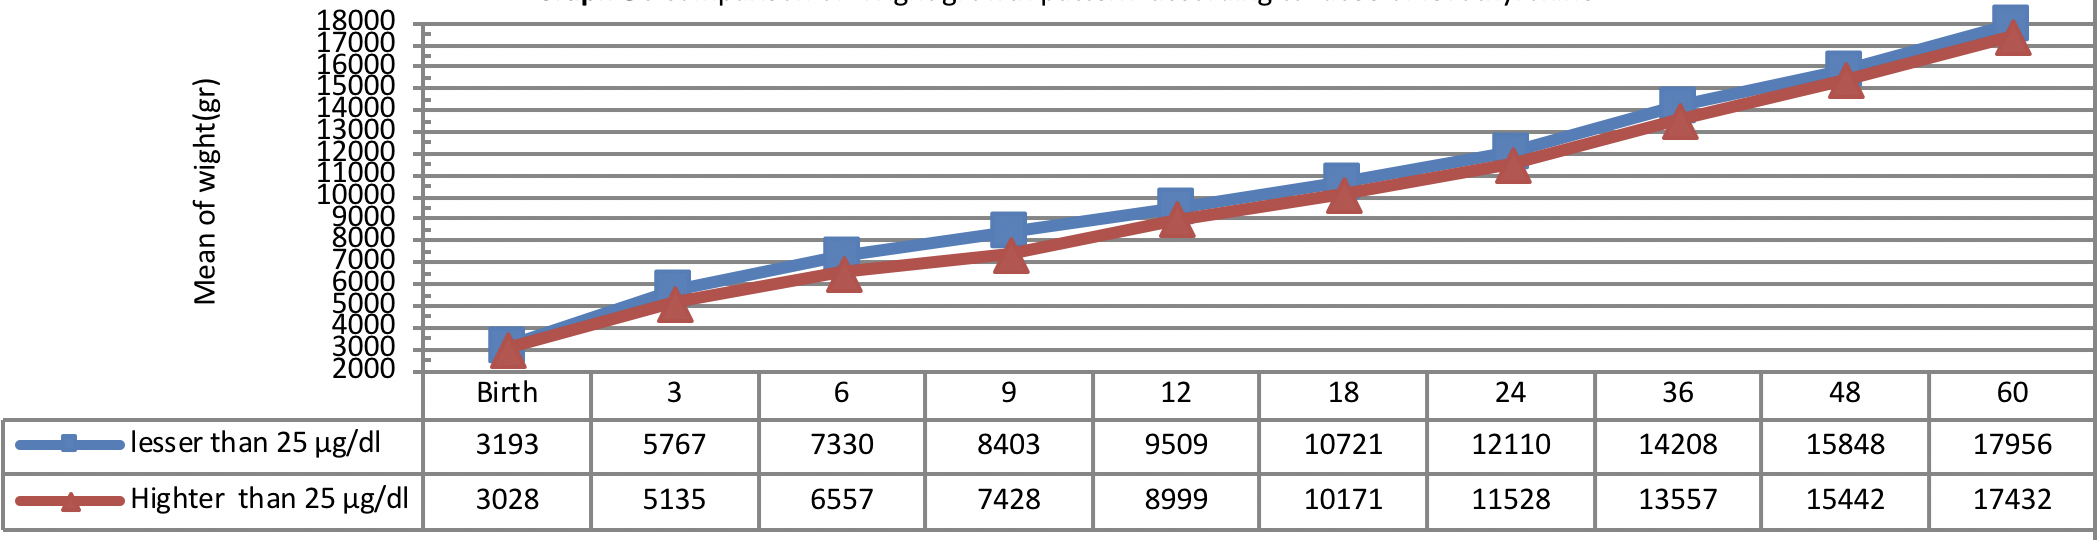 Figure 5 Comparison of Wight growth pattern according to dose of levothyroxine